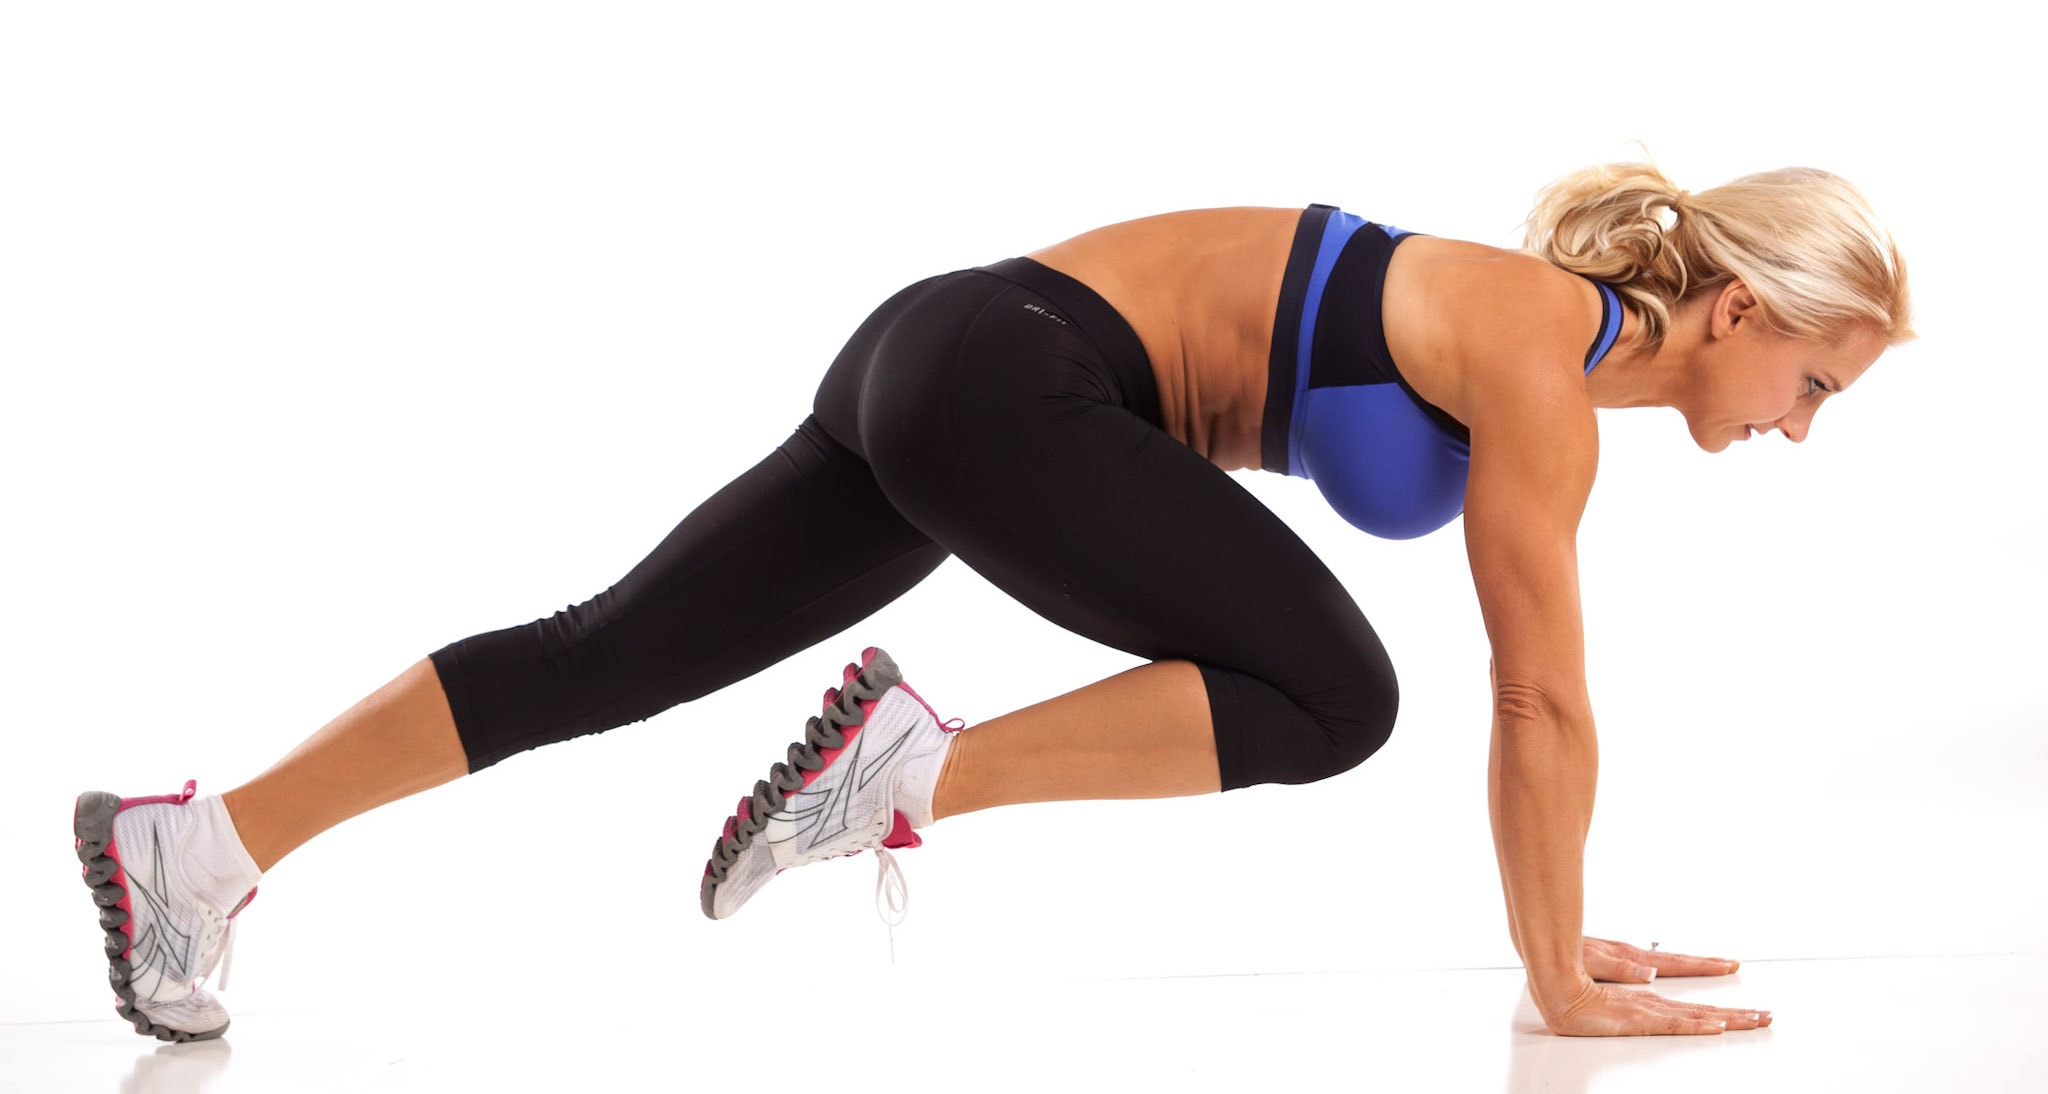 Amazing Ab Workout - All about the core.